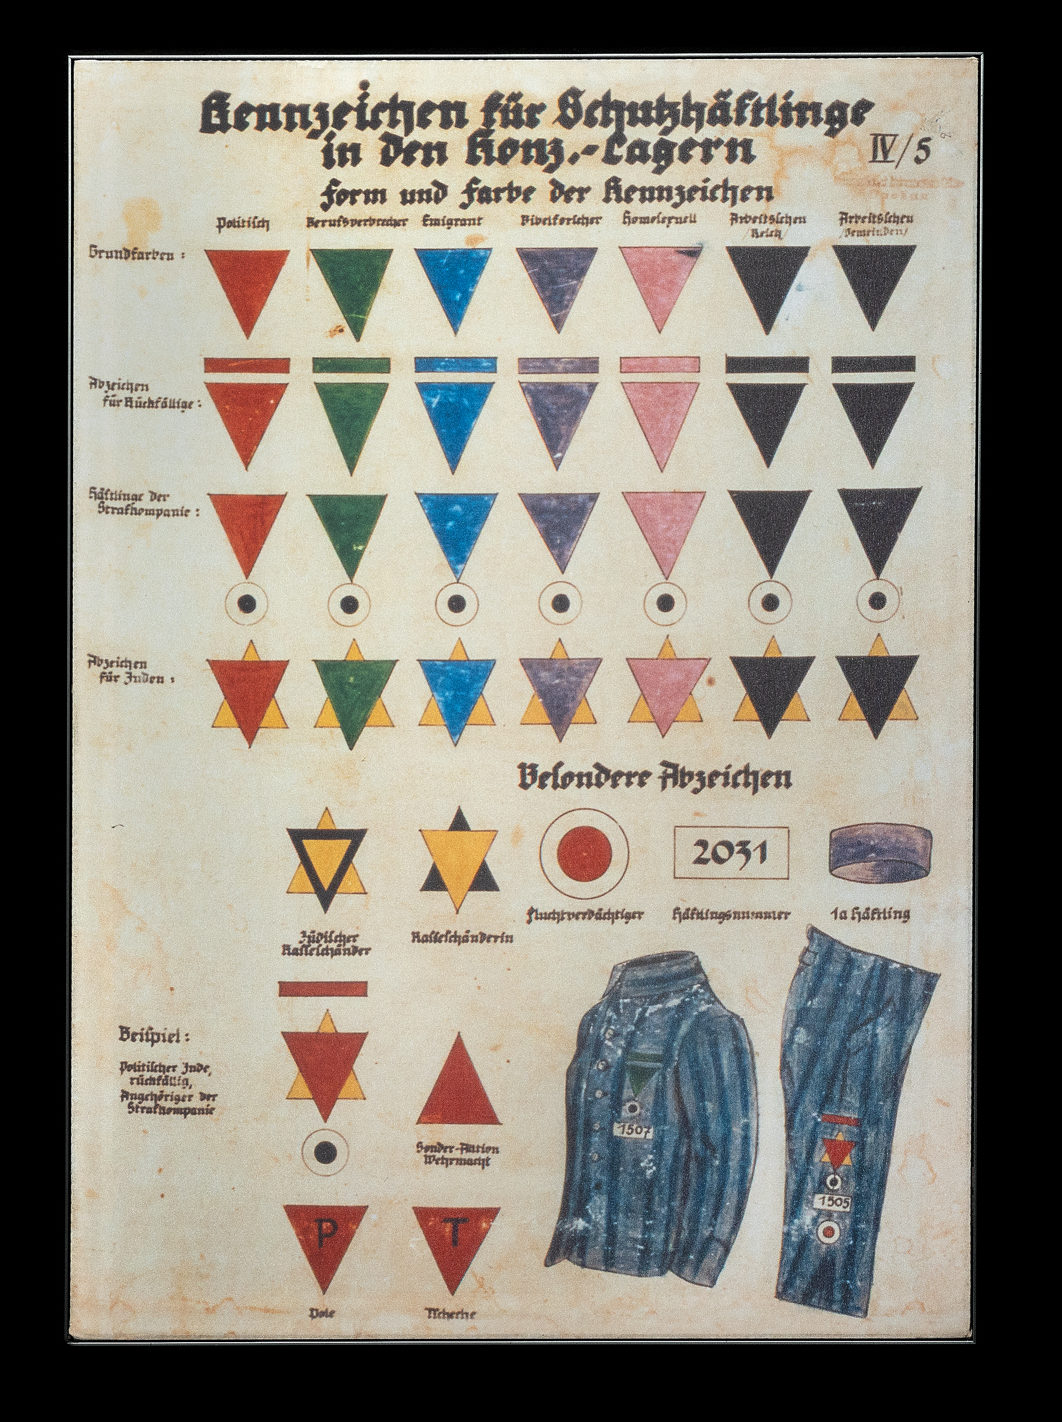 Chart showing prisoner markings (ca. 1941), original in the collection of the Bundesarchiv